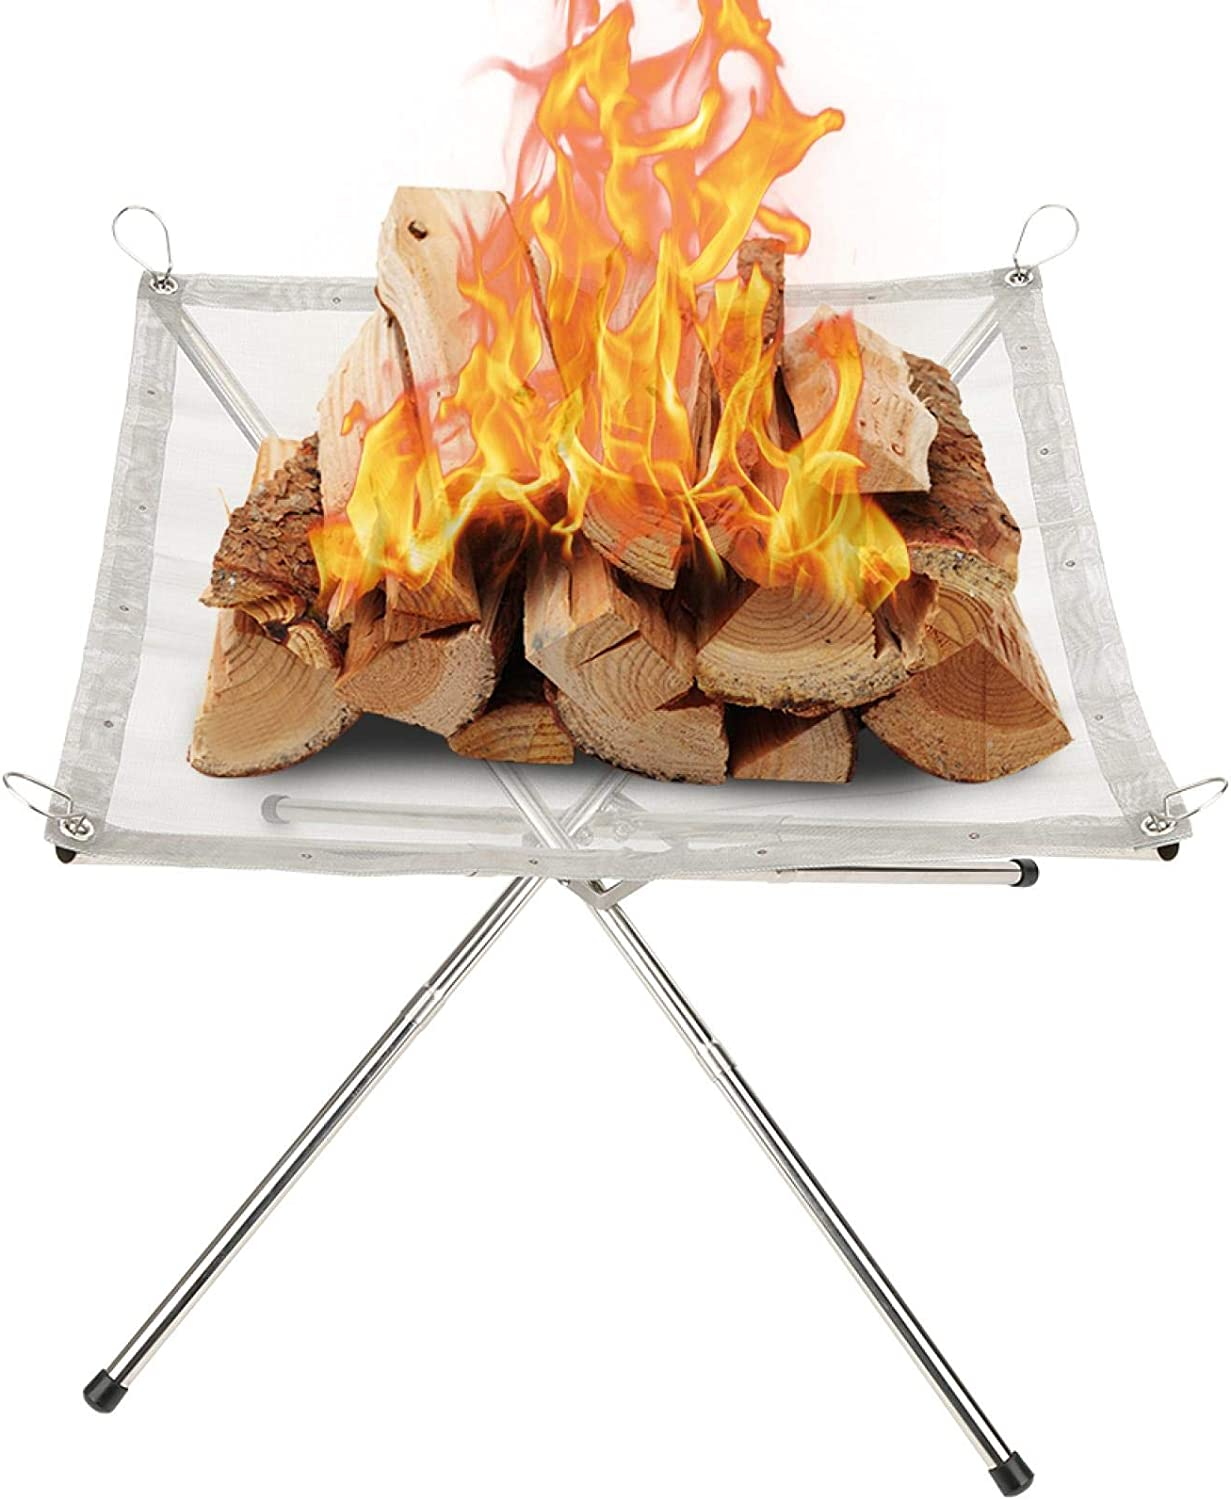 HERCHR Max 84% OFF Portable Fire Pit Outdo Camping Outdoor Outlet sale feature for